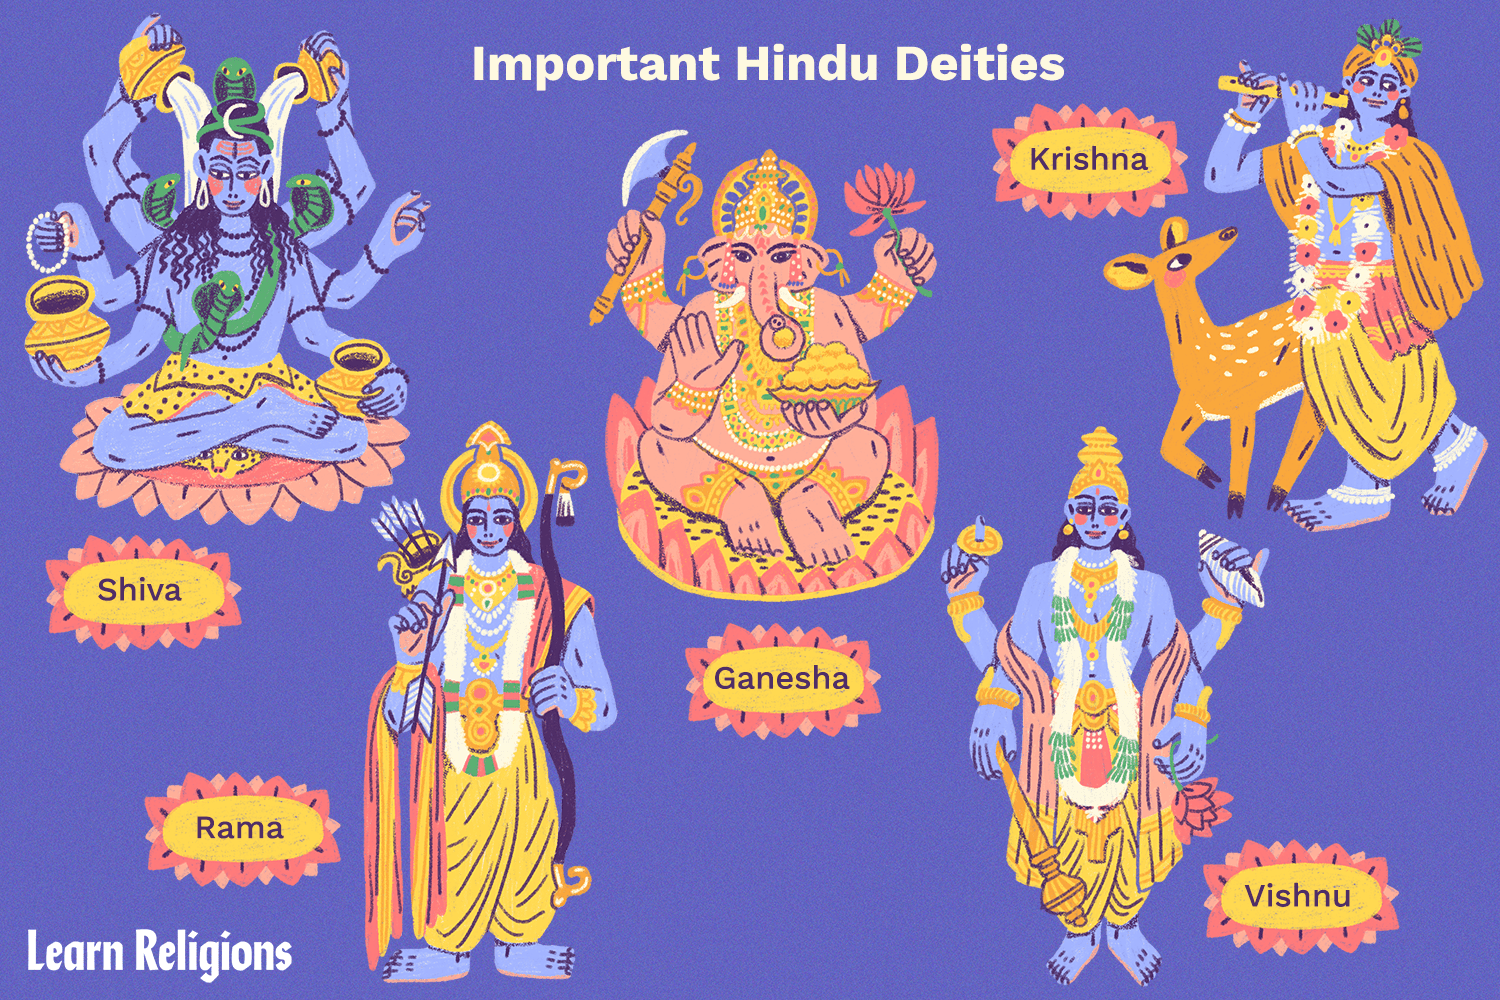 There Are Many Hindu Gods And Goddesses Including Brahma Vishnu And Shiva Learn About Some Of The Most Important Deities O Hindu Deities Hindu Gods Deities